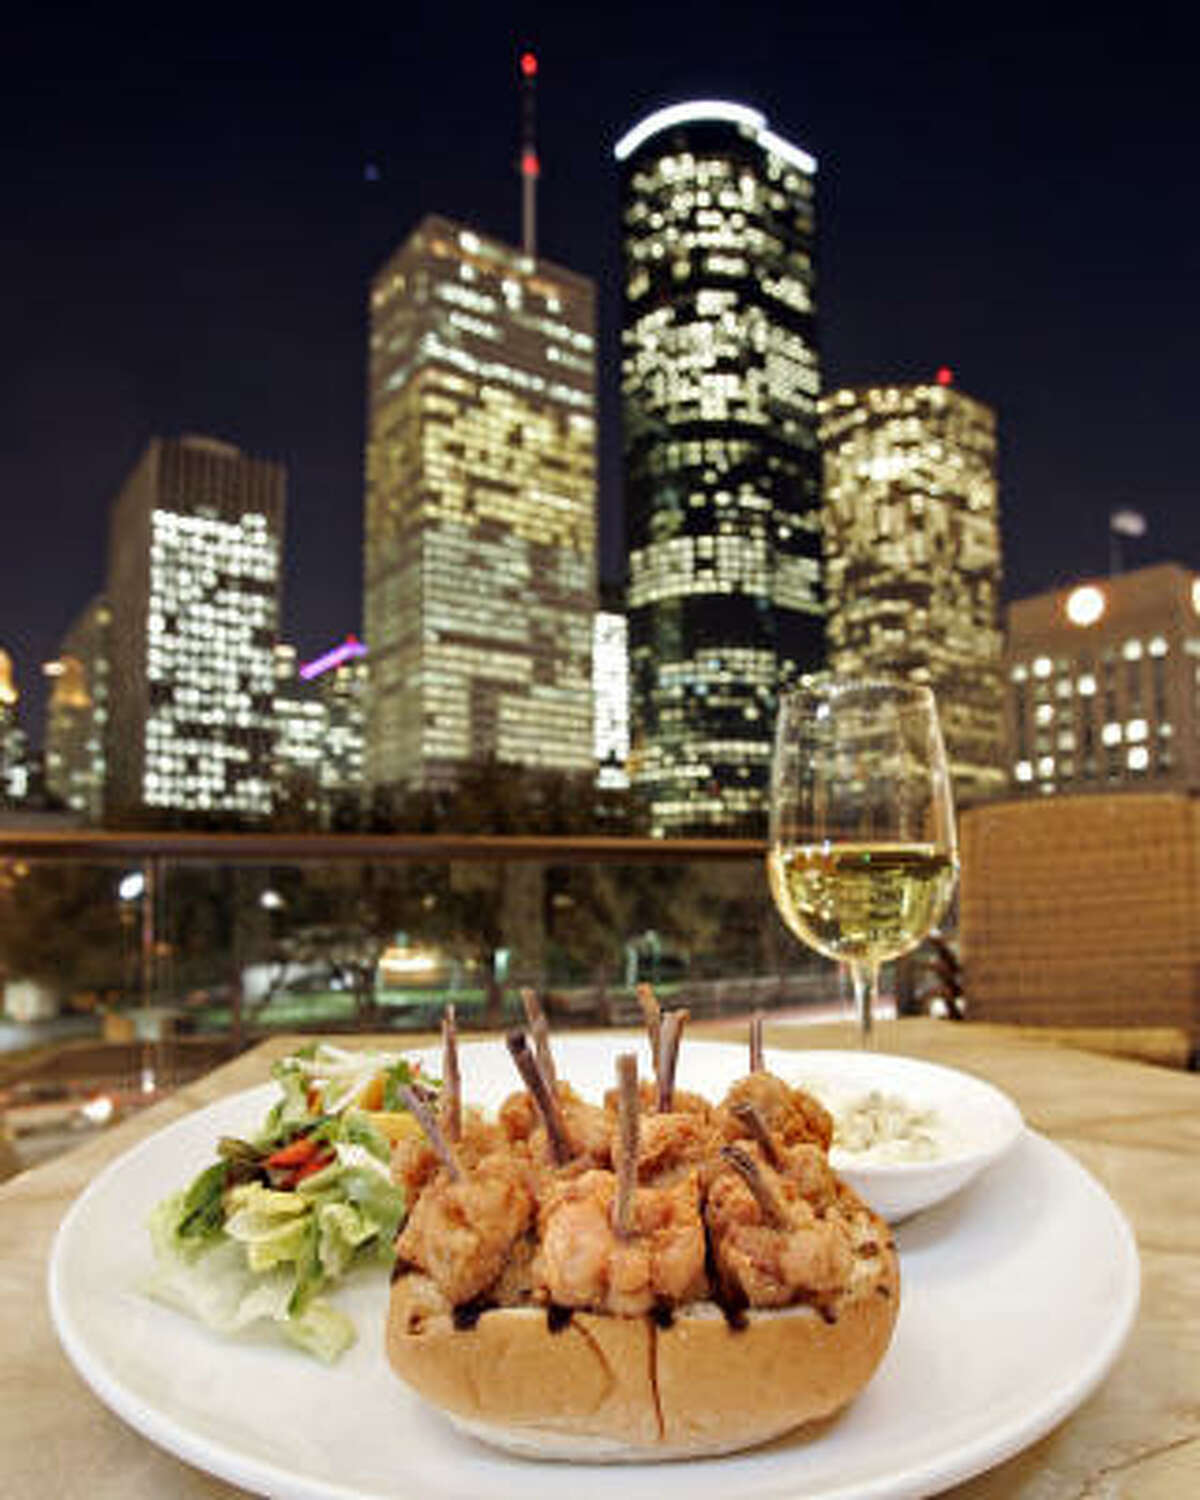 Want to eat among the city lights? Check out some of Houston's most popular downtown restaurants. Artista, 800 Bagby St.